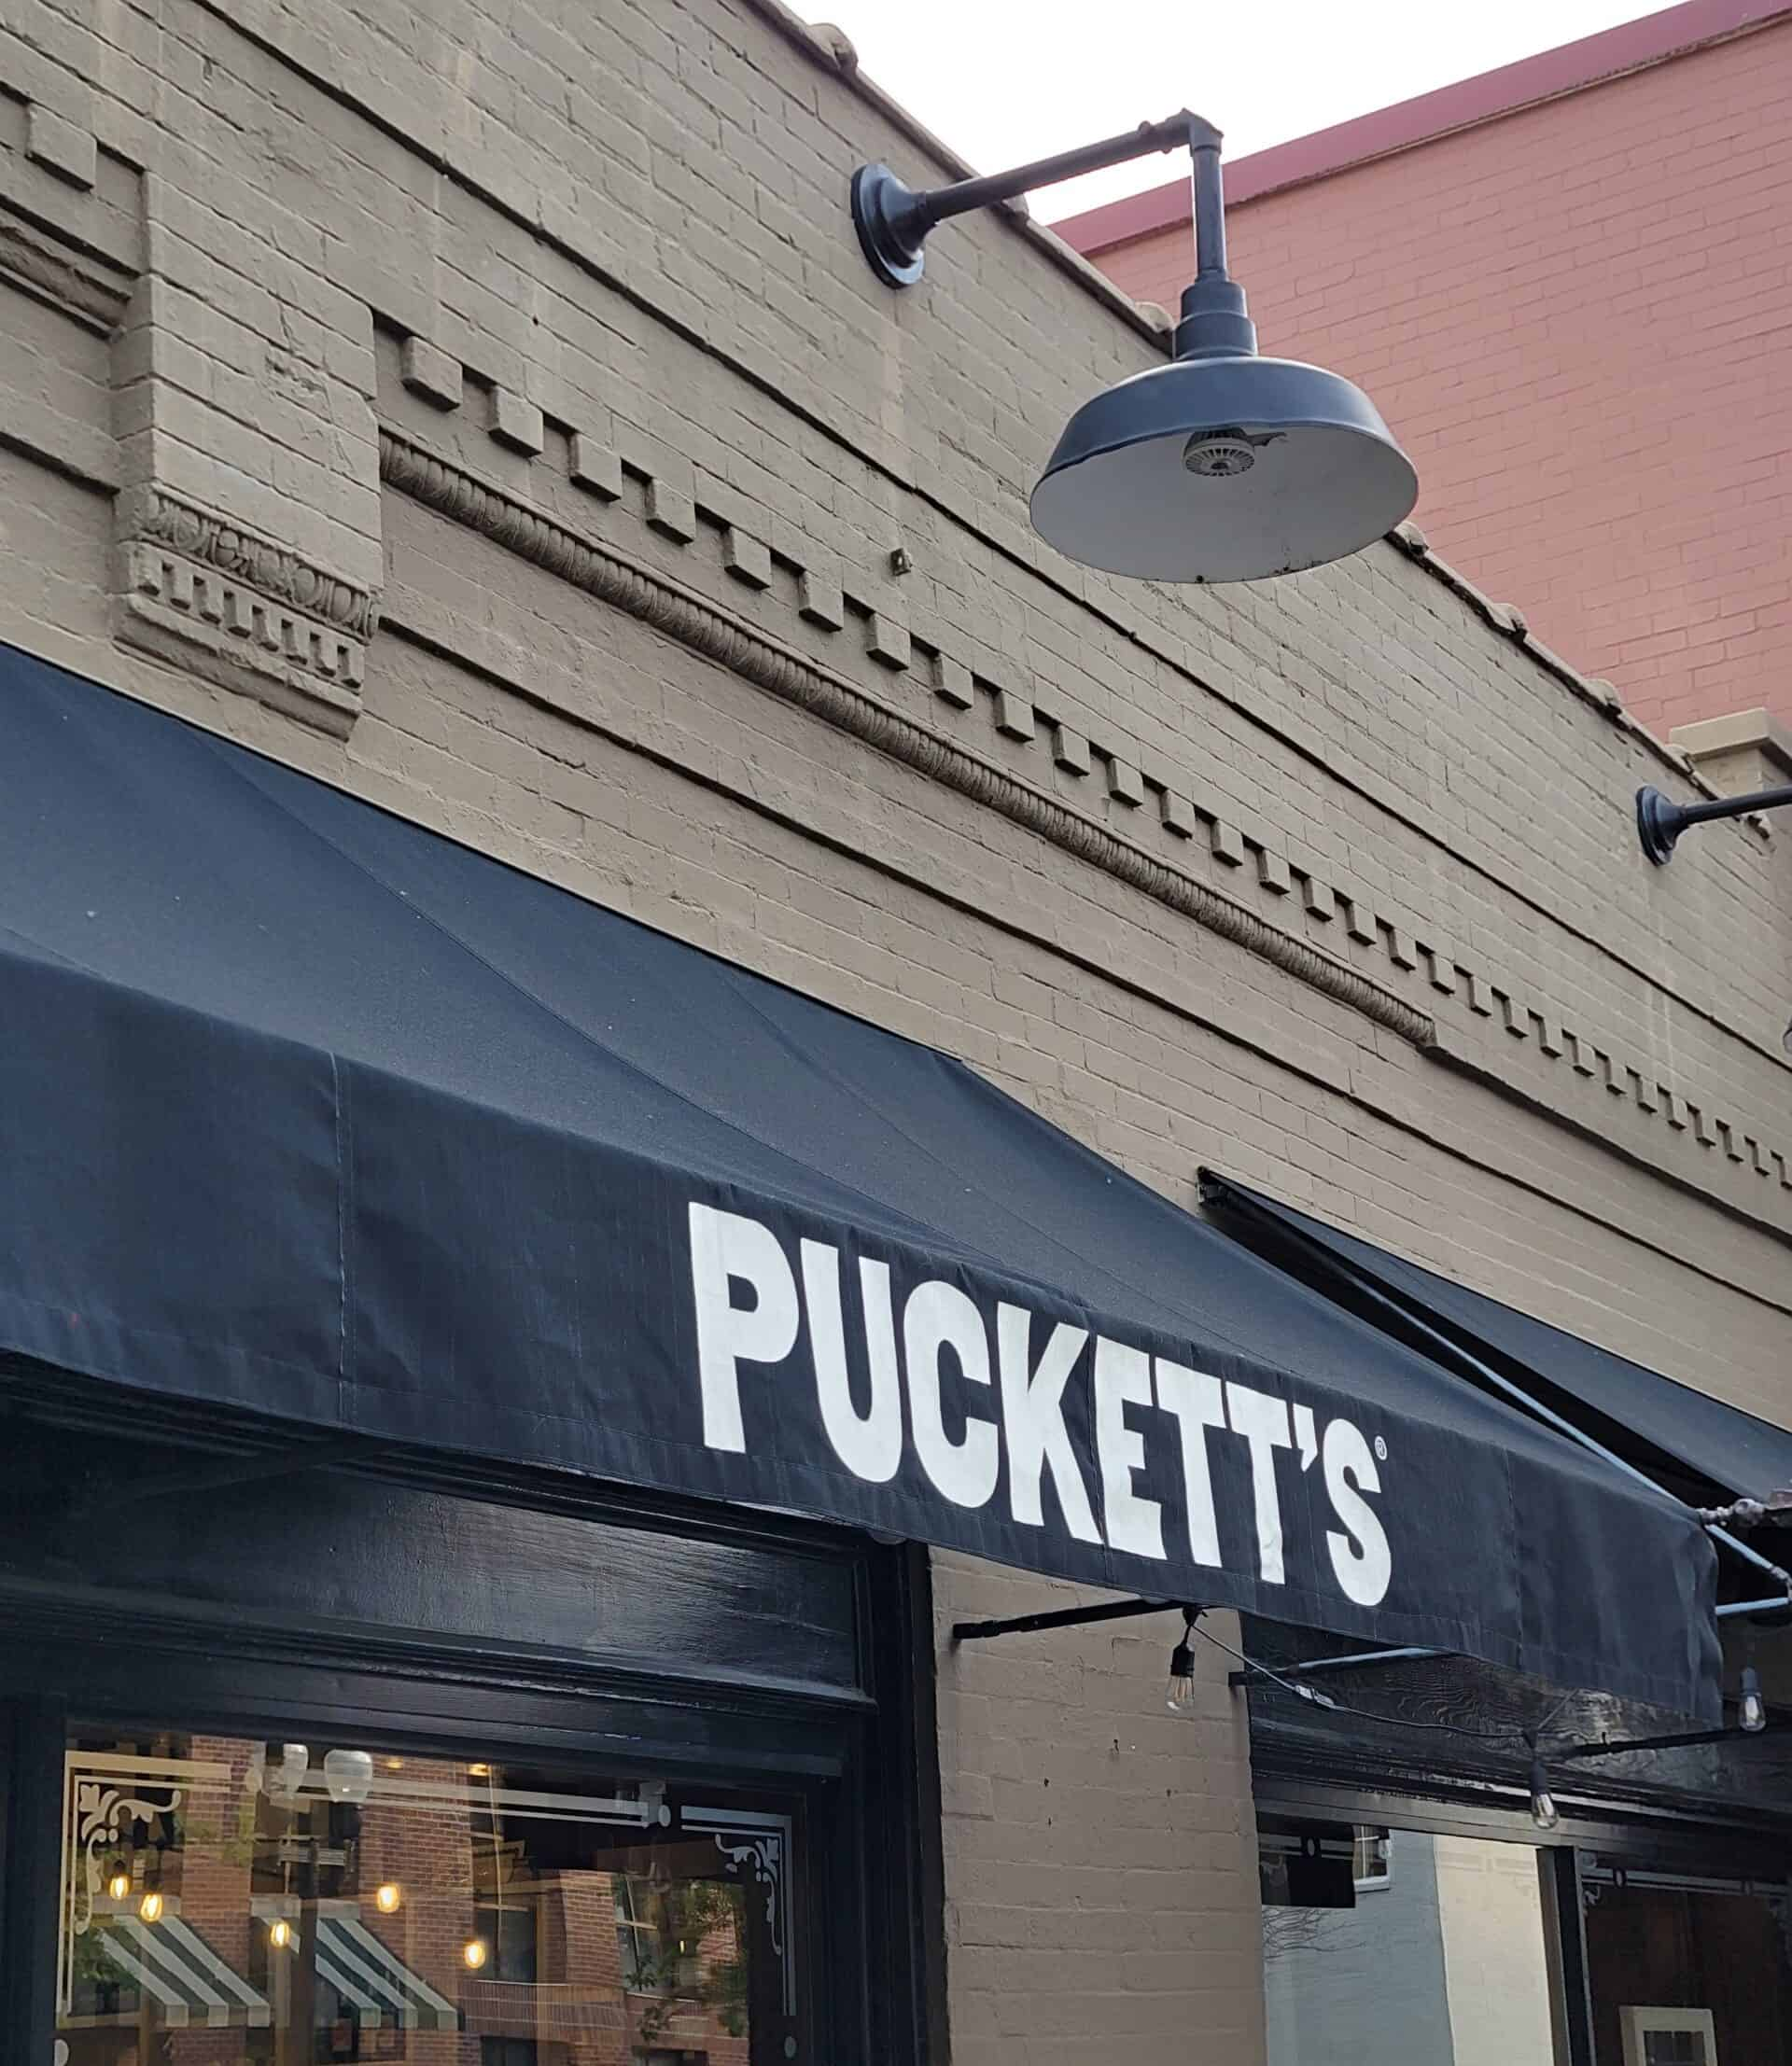 pucketts restaurant awning